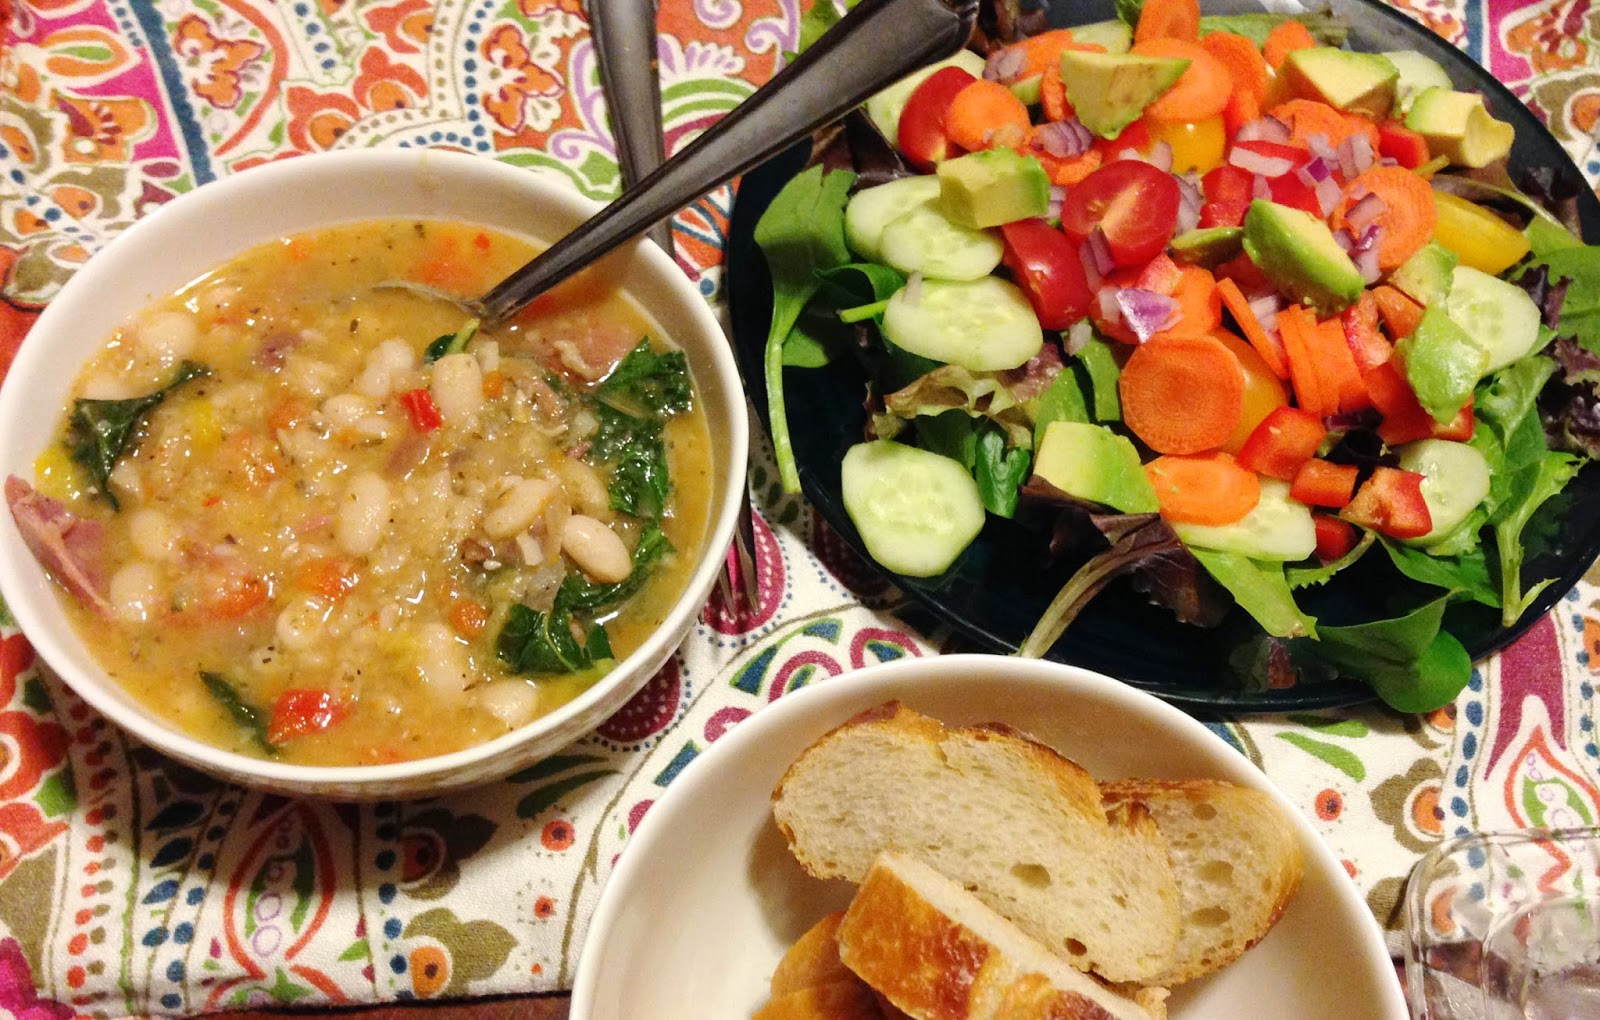 The quest for Grandma's ham and bean soup: A for-now recipe